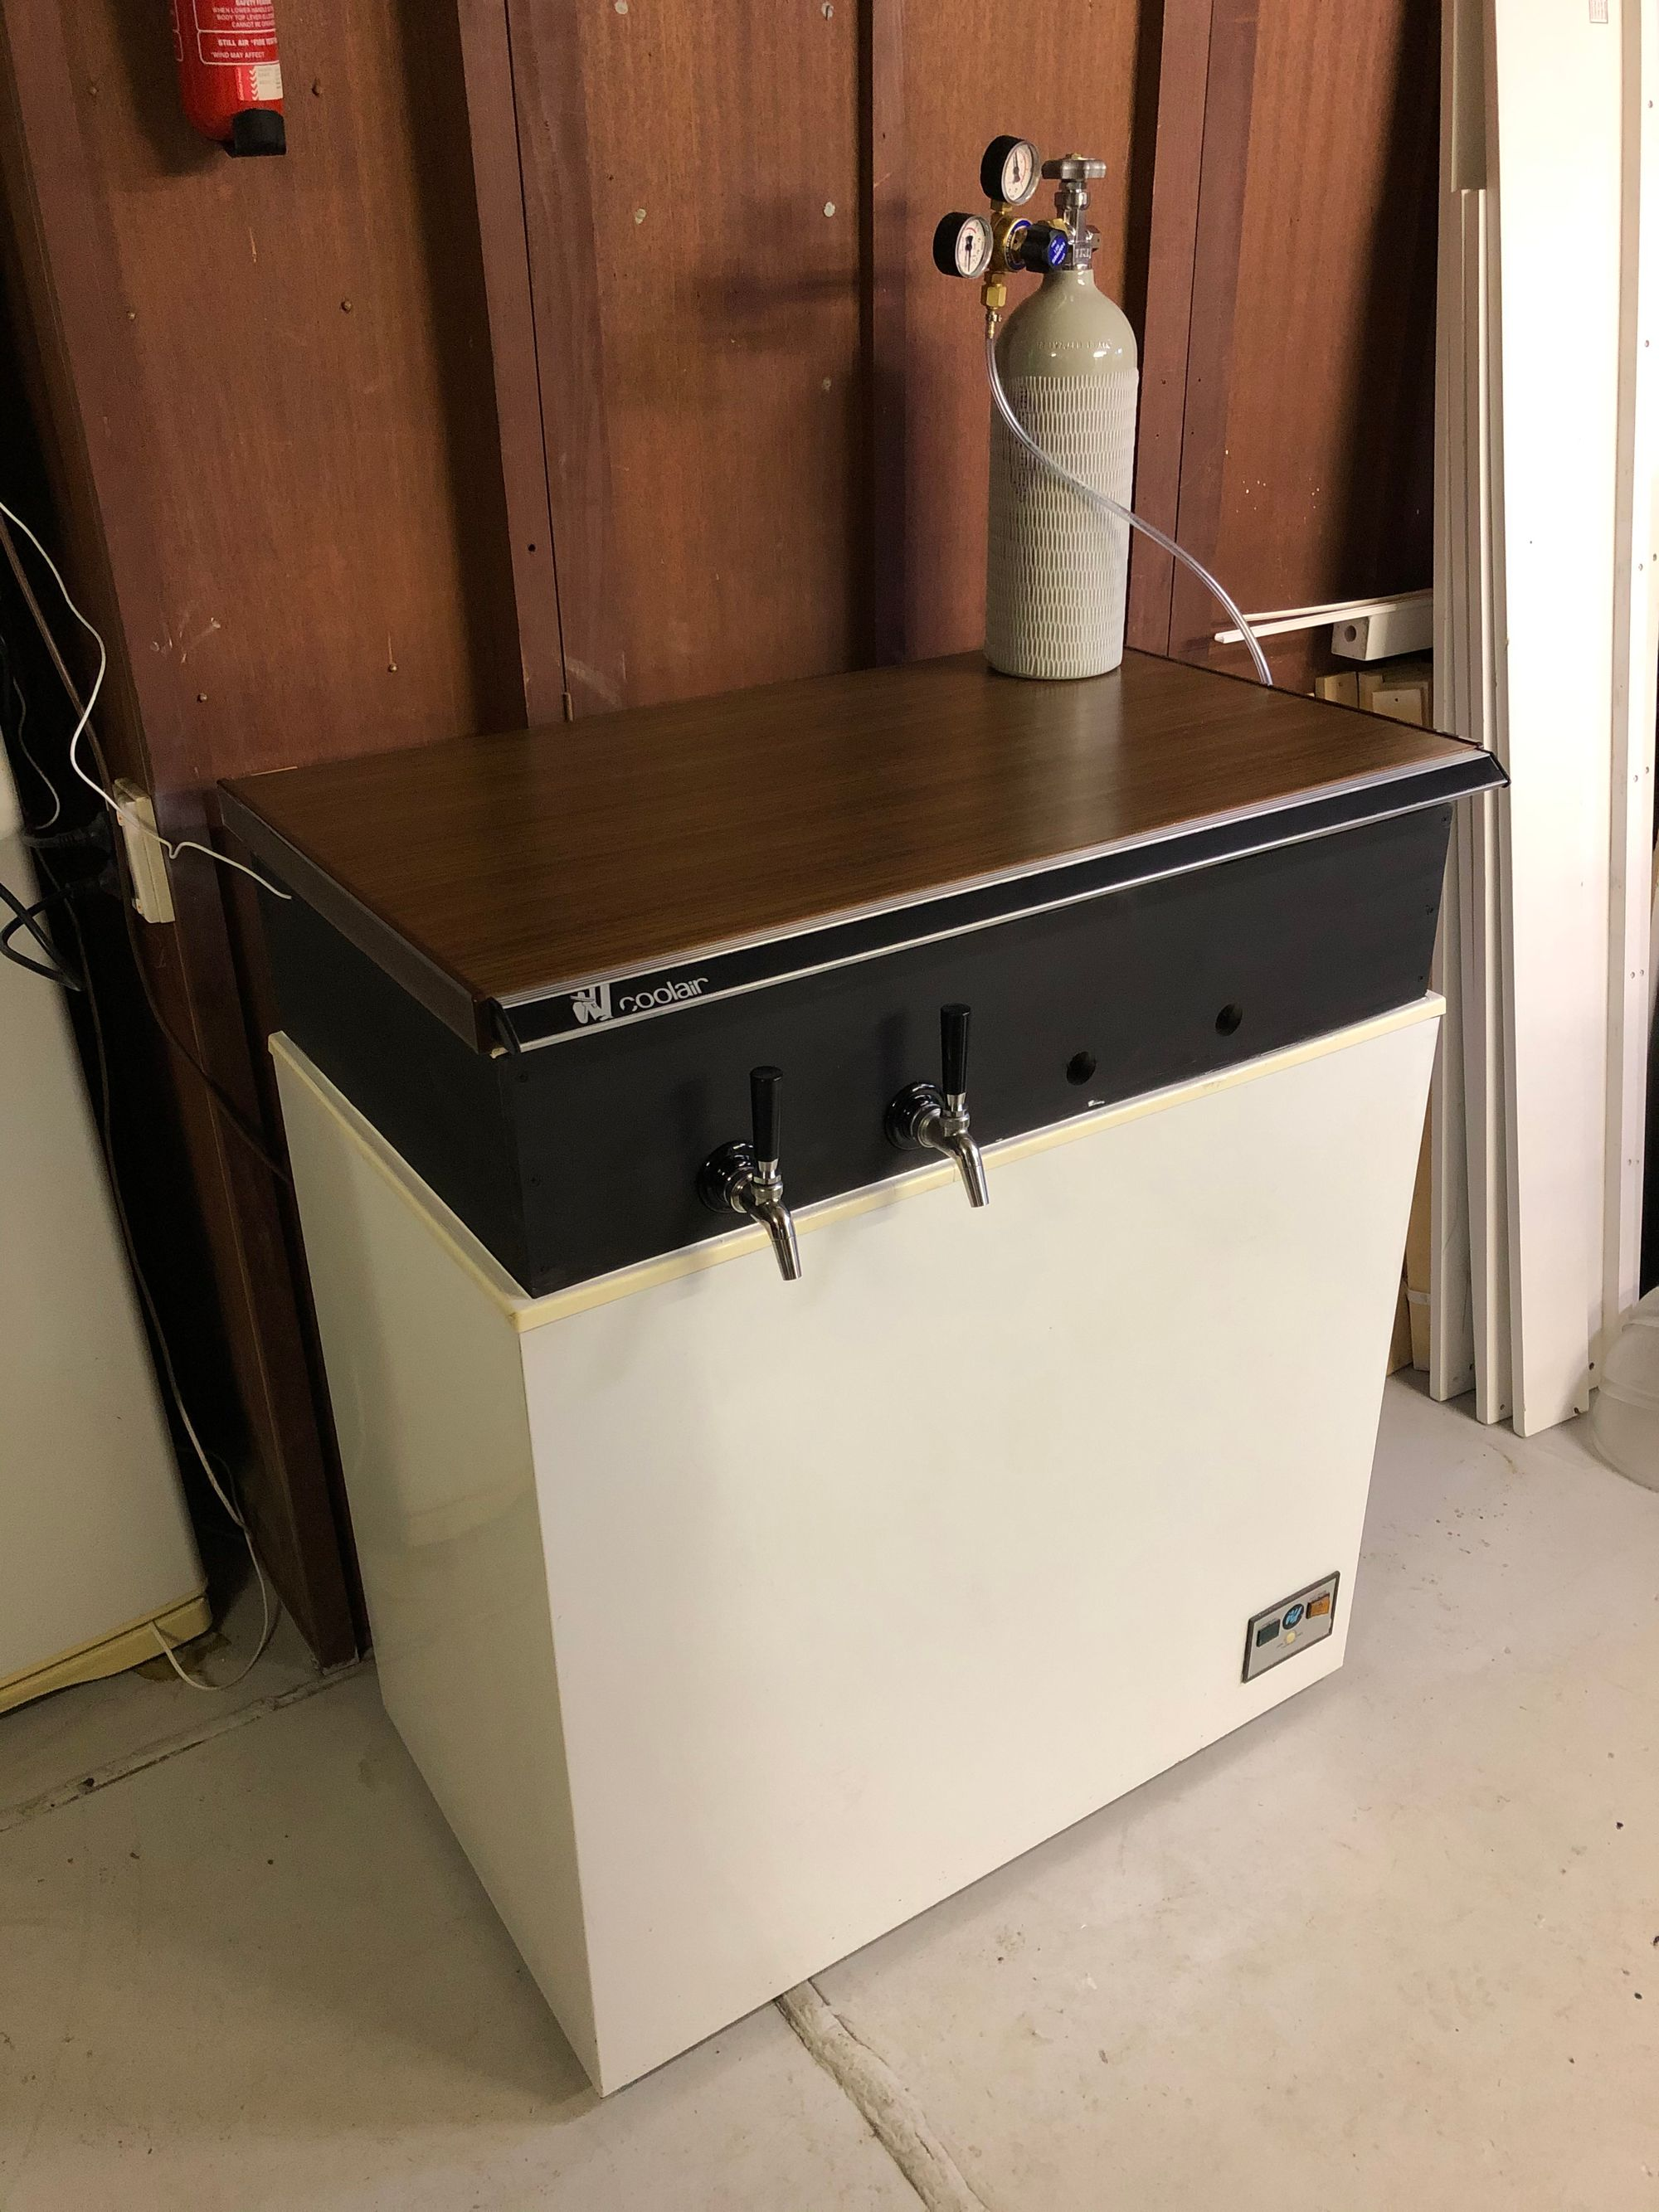 Keezer build